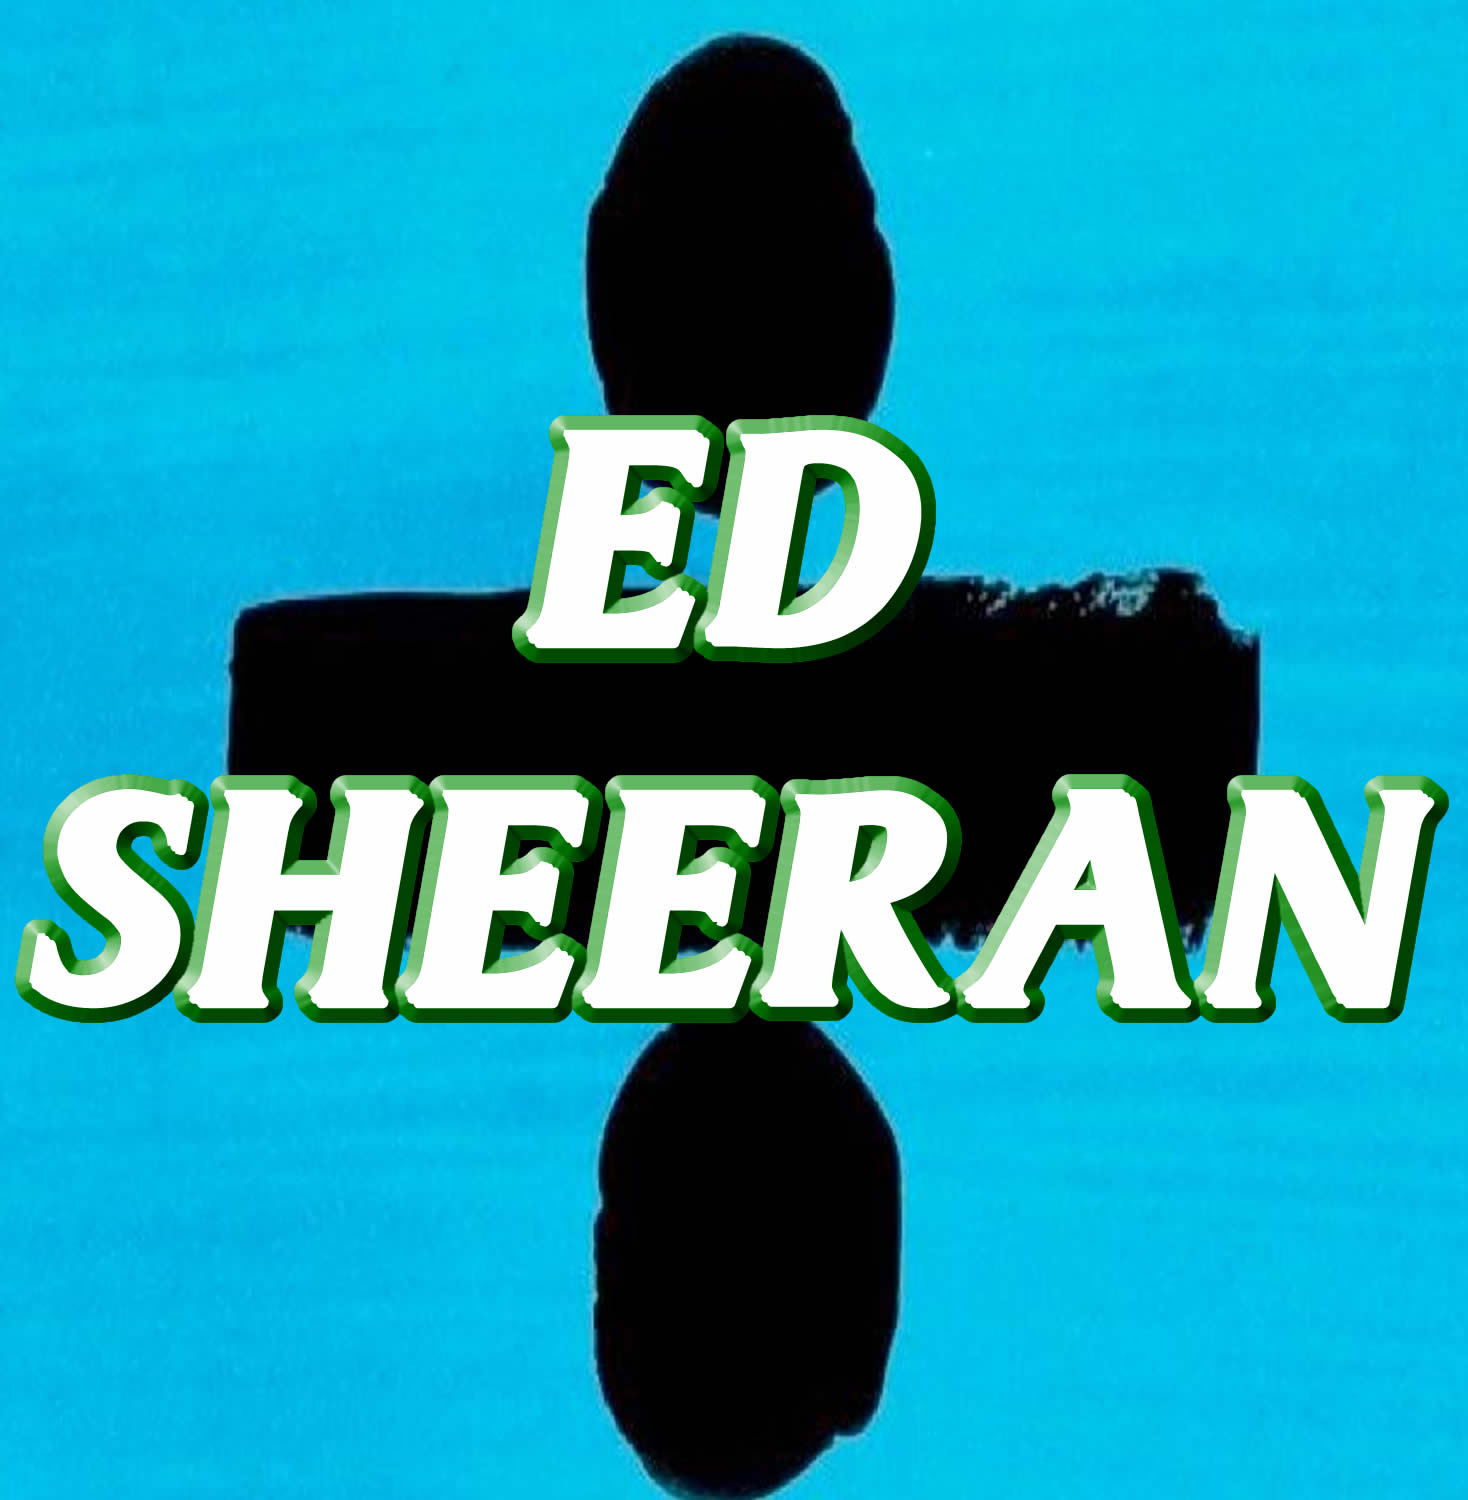 Vocal-Star Ed Sheeran Hits 18 Tracks